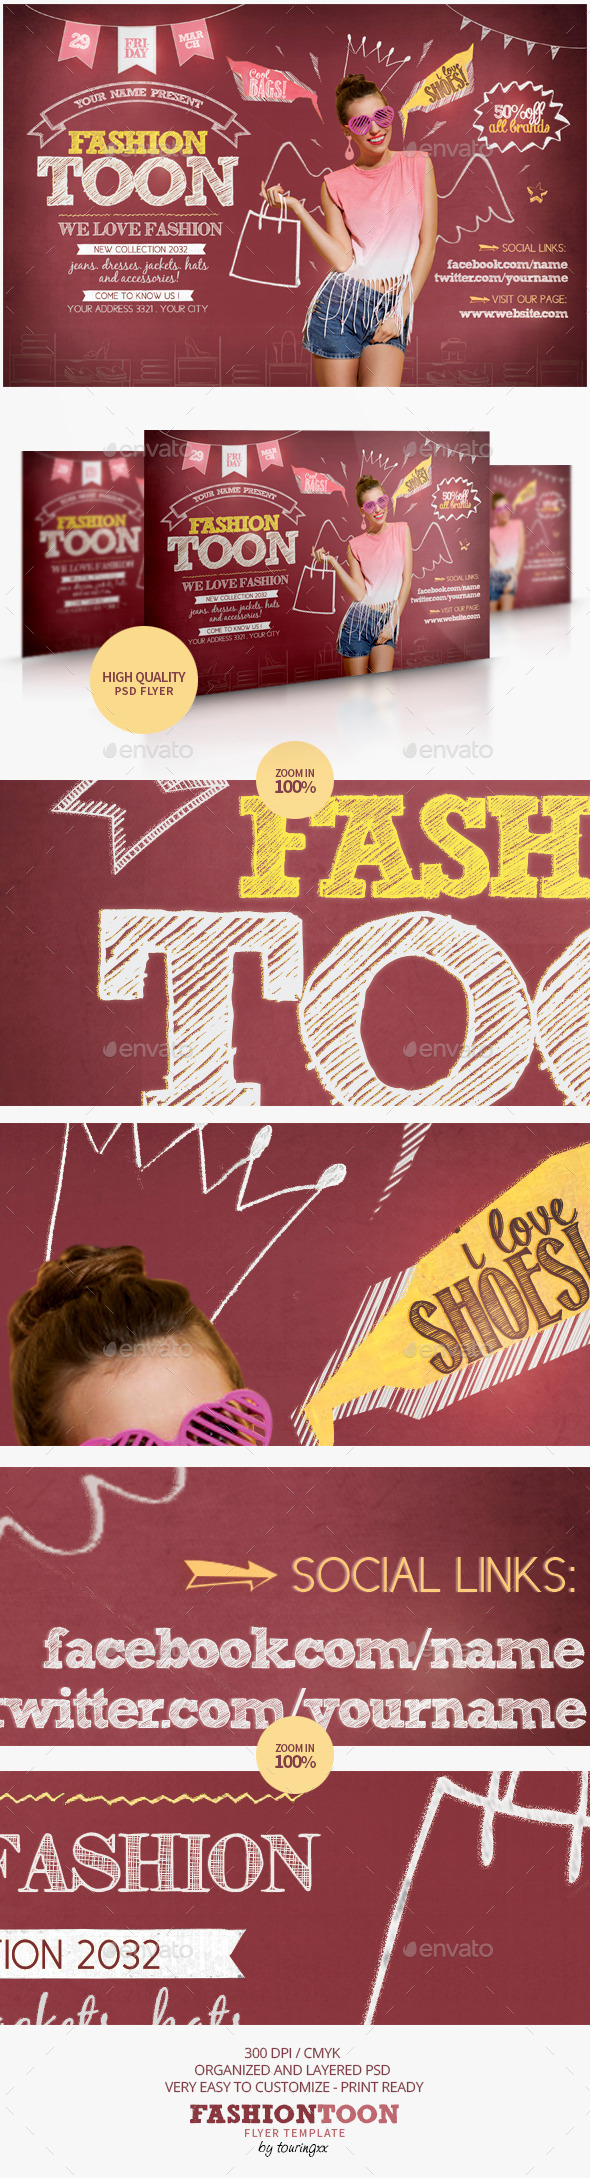 GraphicRiver Fashion Toon Flyer Template 9219820